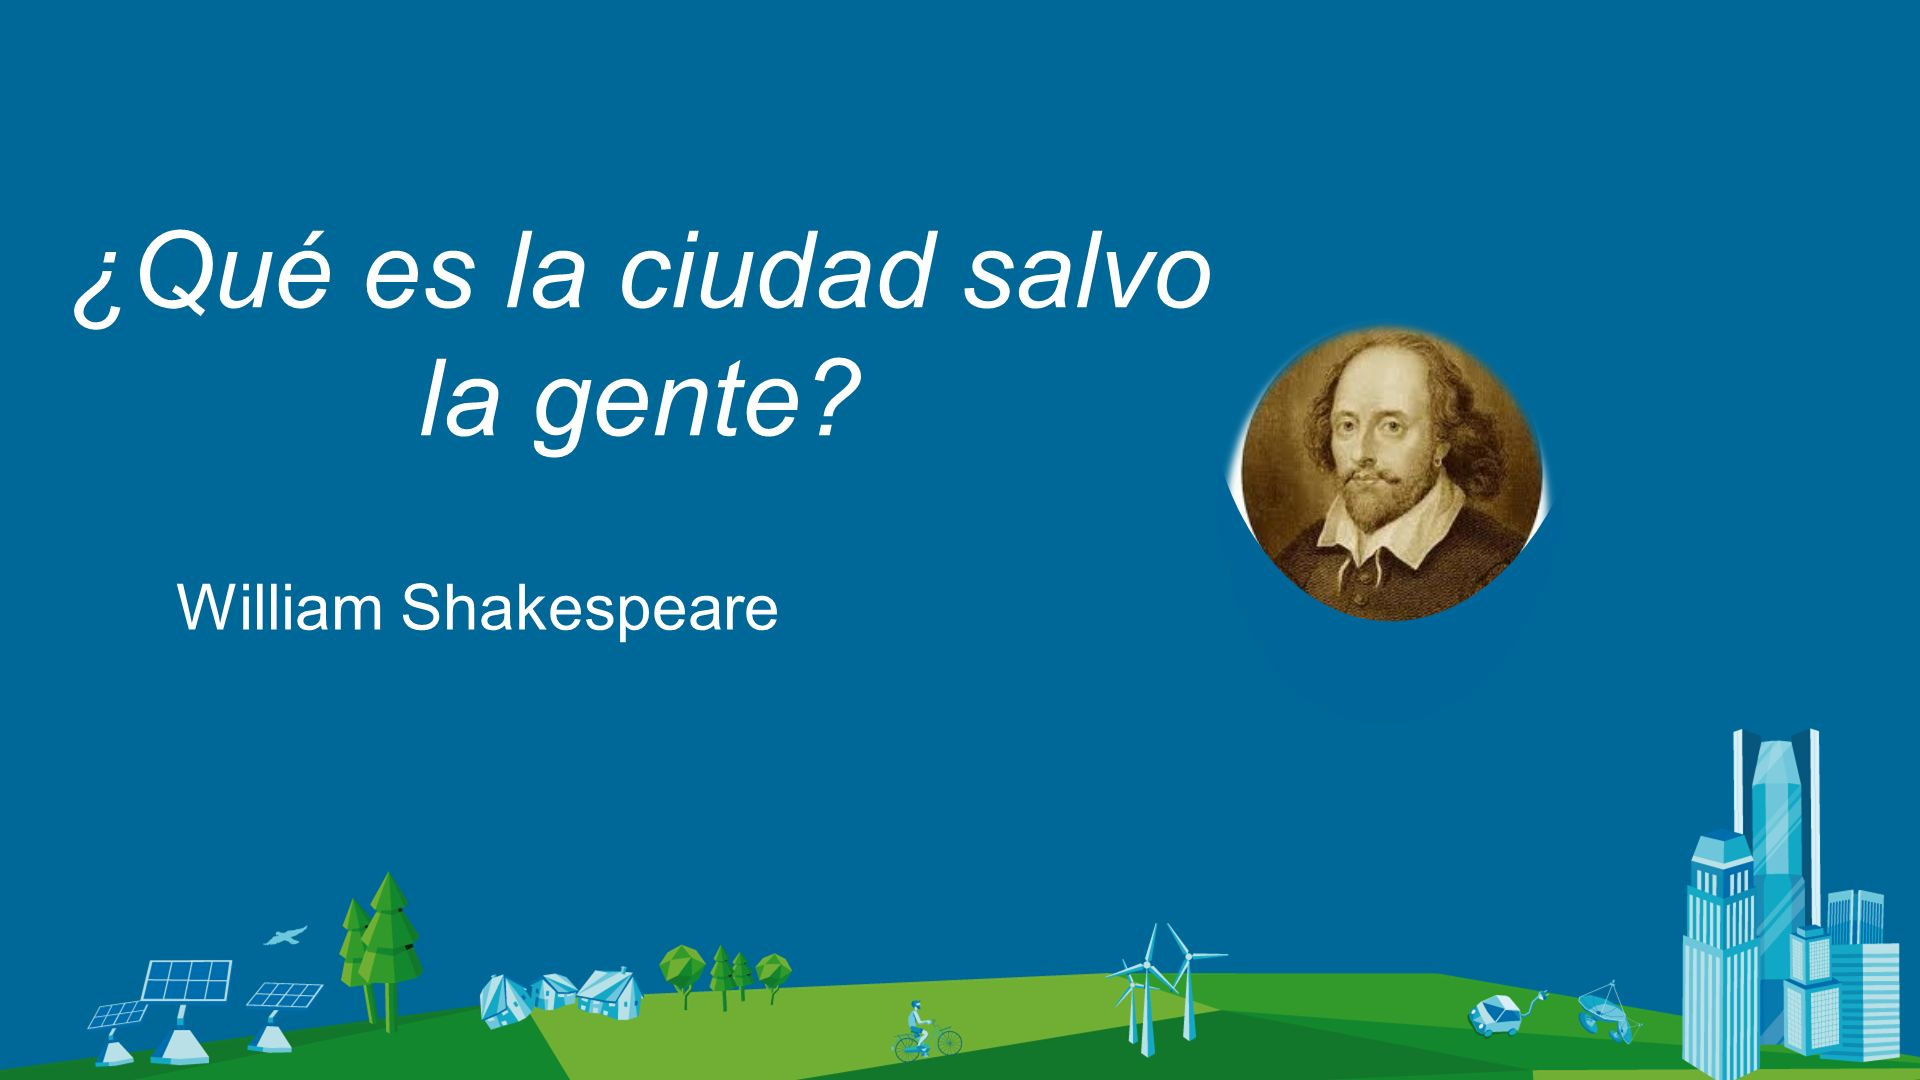 ¿Qué es la ciudad salvo la gente? William Shakespeare